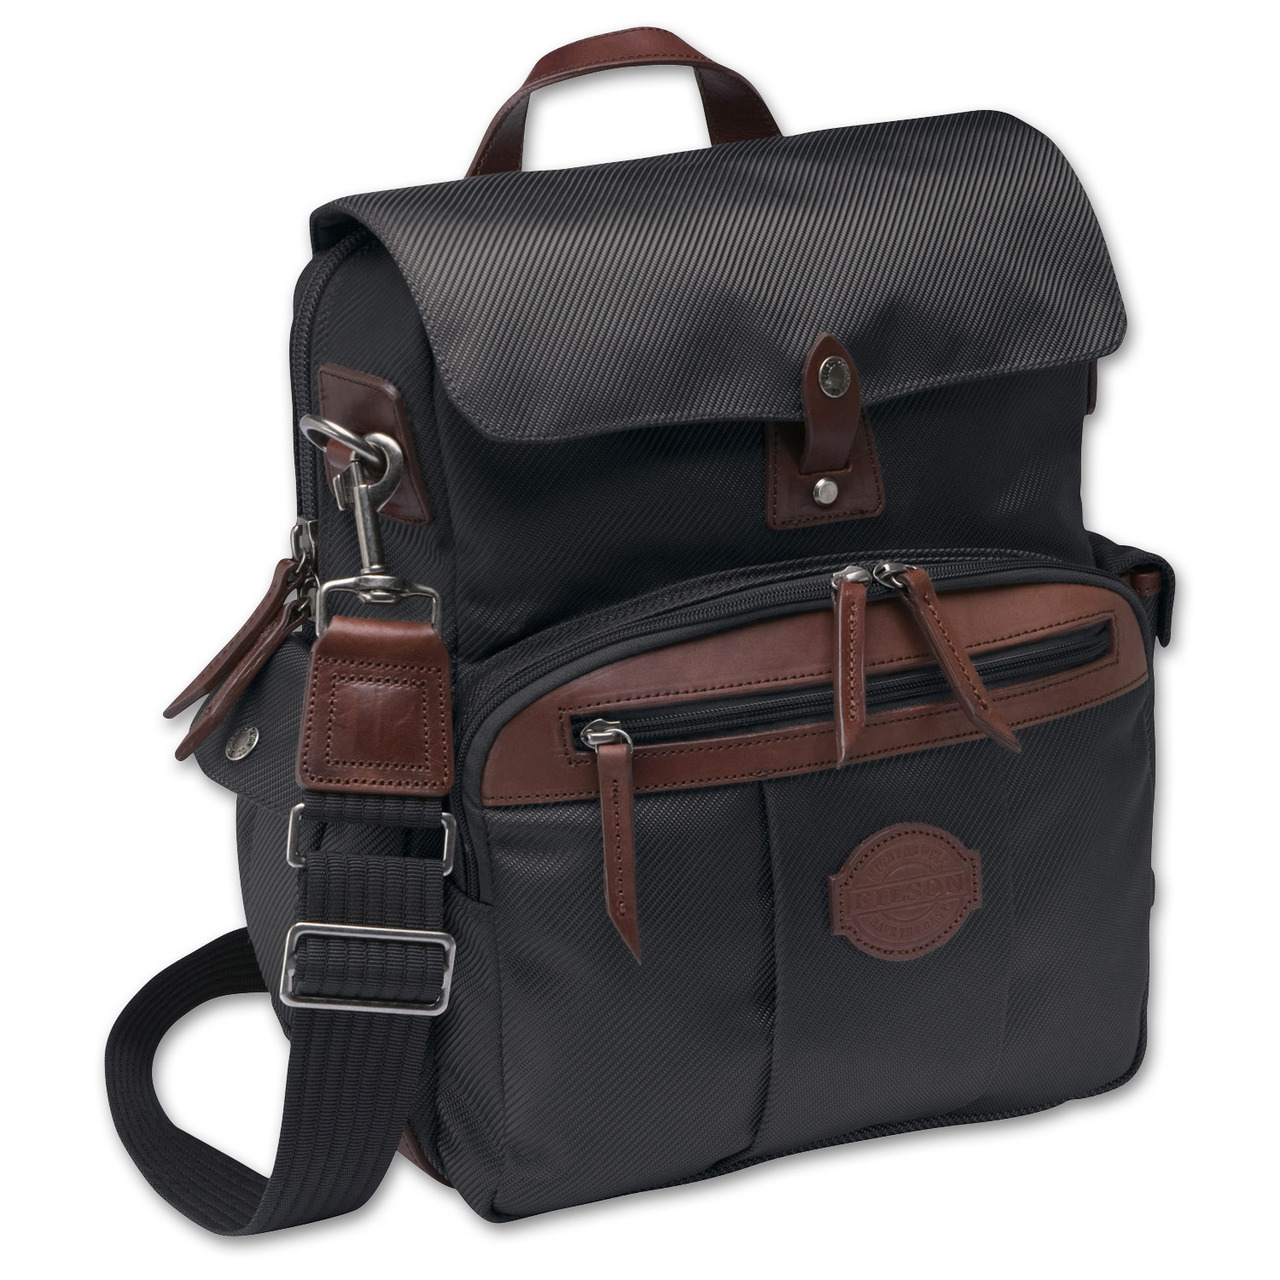 "Passage Field Briefcase A briefcase designed for work in the field or office  Style #73013  $180.00$134.99  Choose Color Color: Black  The Field Briefcase is a vertically oriented bag that features a front zippered compartment with interior organizer pockets, front zipper pocket with attached key-fob clip. Two open side pockets. Leather handles and side D-rings for padded shoulder strap. Interior padded computer pocket. Leather wrapped bottom edges. Meets carry-on requirements. Imported. Features 1 full width zipper with large snap flap tab closure. 2 end utility pockets with snap flap closures; interior organizer pockets. Side D-ring with detachable shoulder strap. Interior padded computer pocket. Special Features Interior clasp for keys, side D-ring with detachable shoulder strap. Usage Field, Travel, Business, Casual 12"" W x 15"" H x 4"" D  http://www.filson.com/products/passage-field-briefcase.73013.html?fromCat=true&fvalsProduct=luggage/field-bags&fmetaProduct=1019"